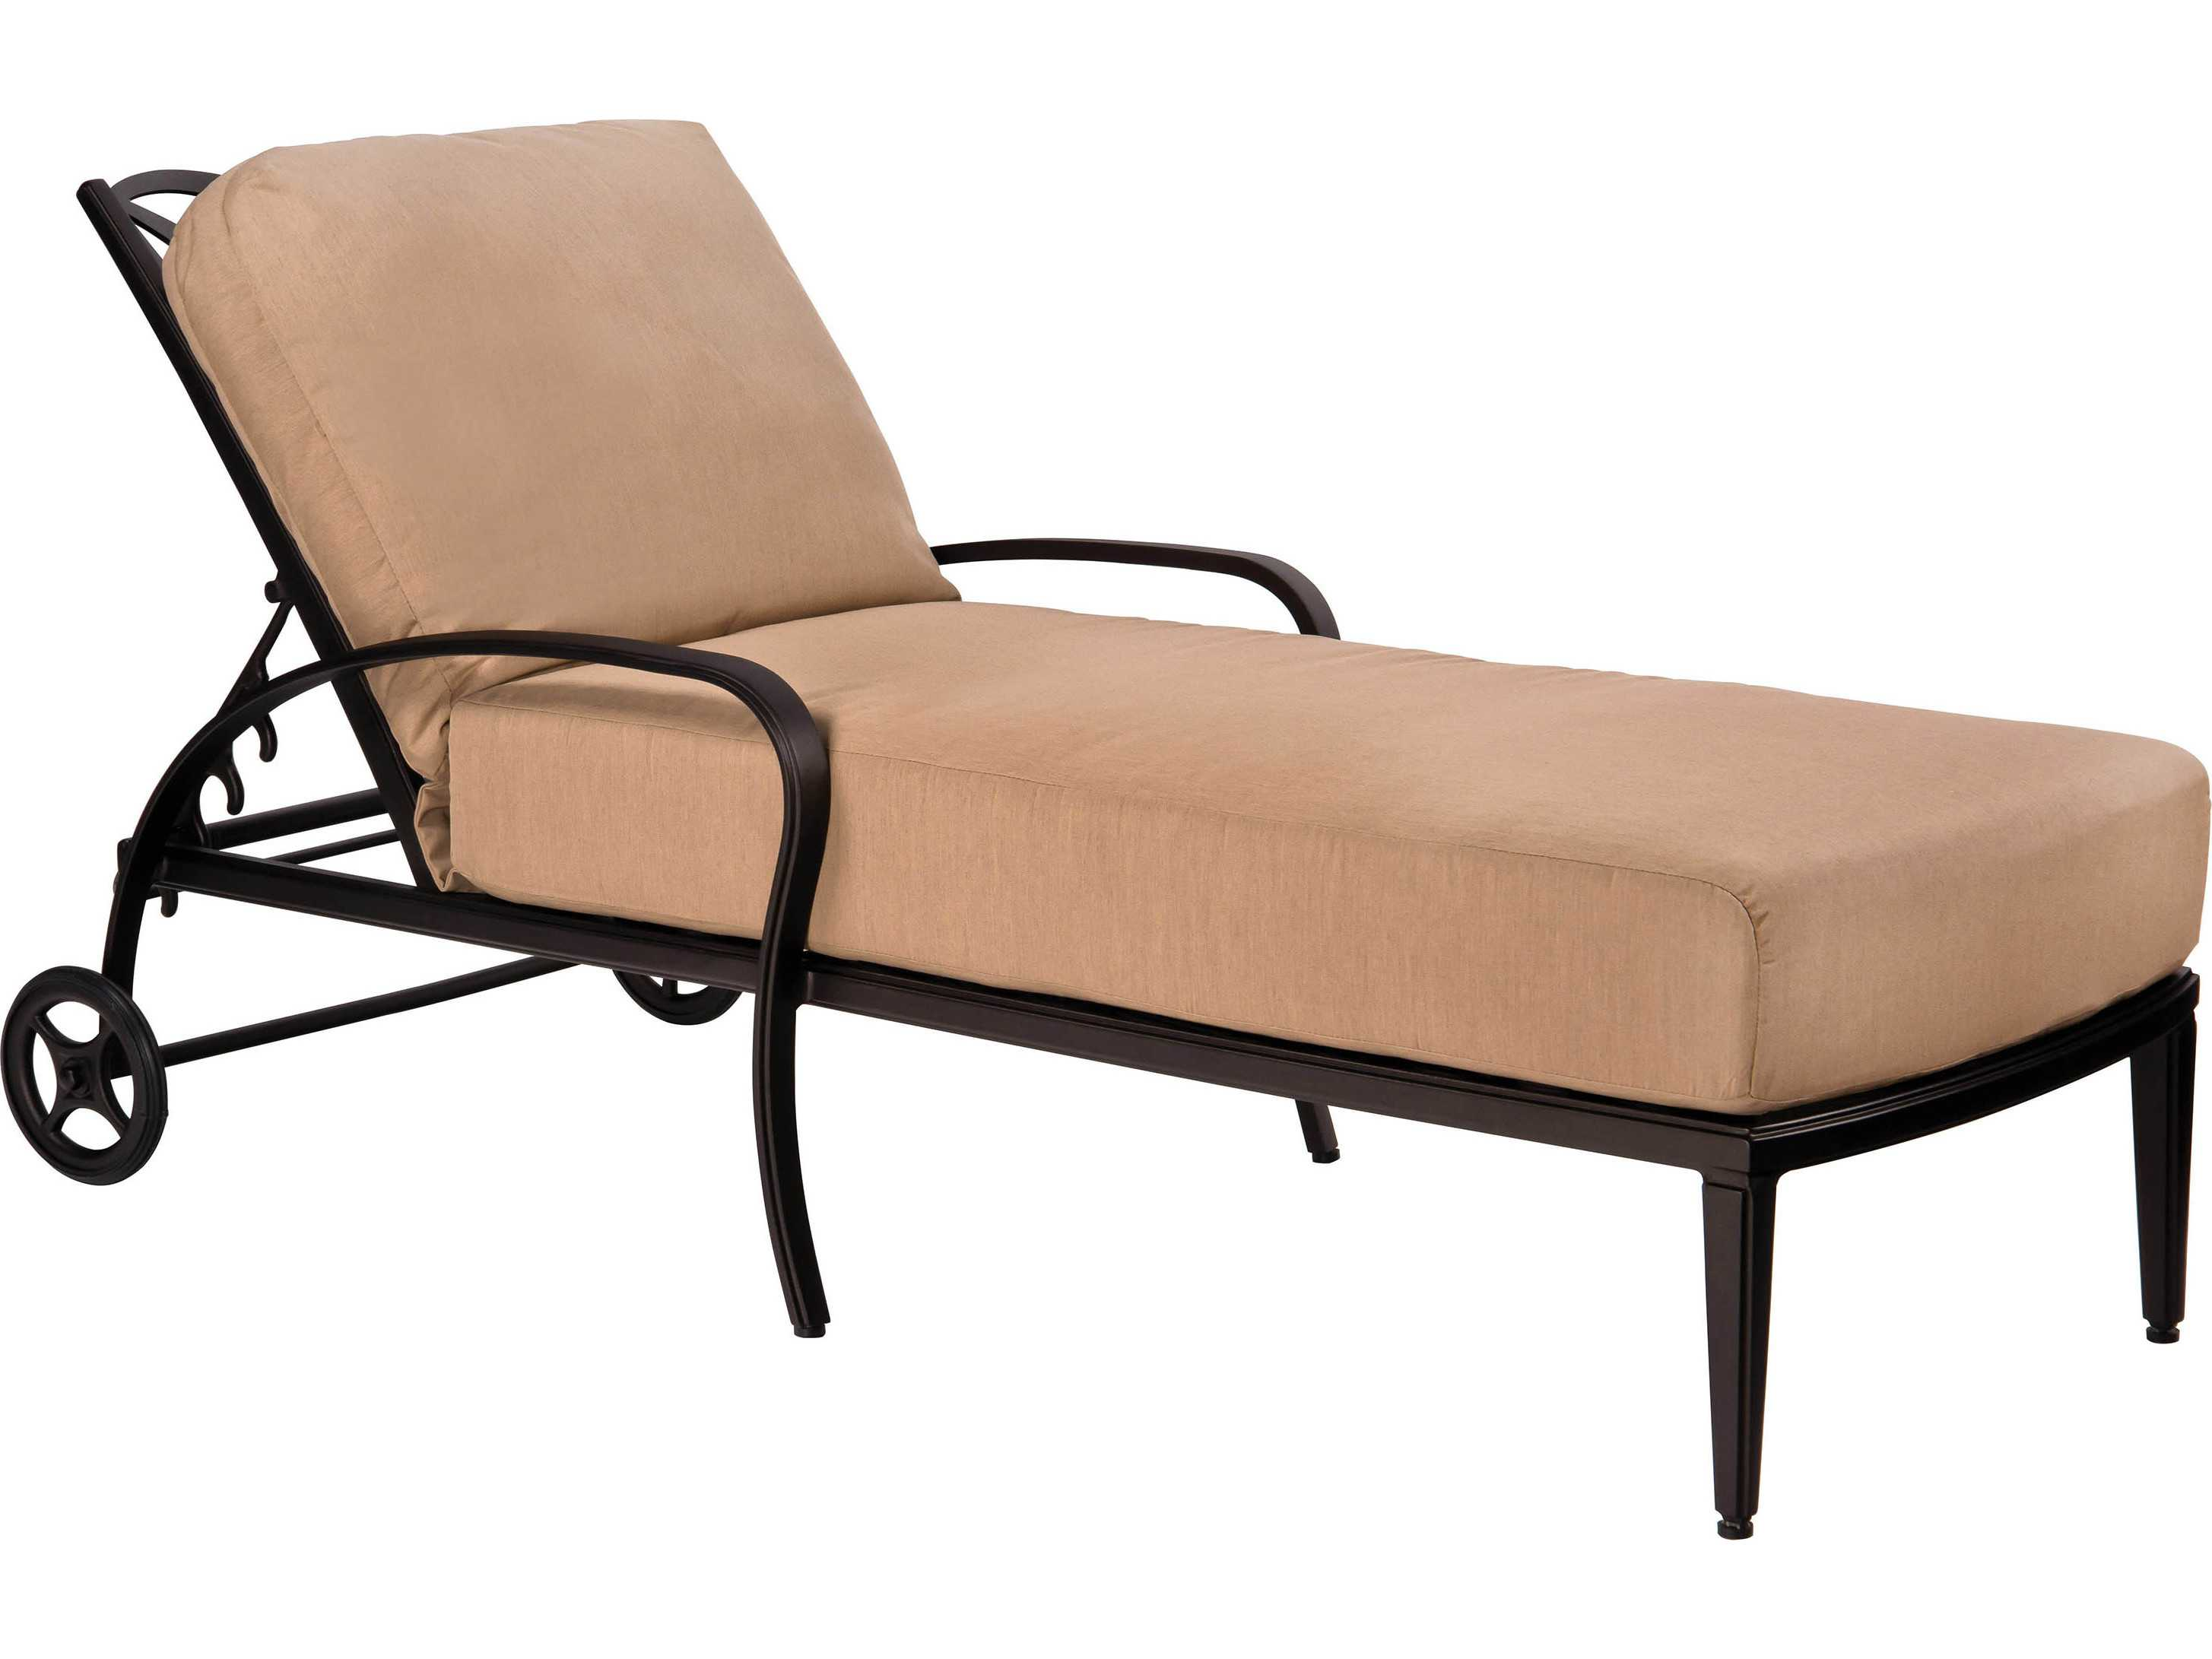 Woodard apollo aluminum chaise lounge 7u0470 for Aluminum outdoor chaise lounge